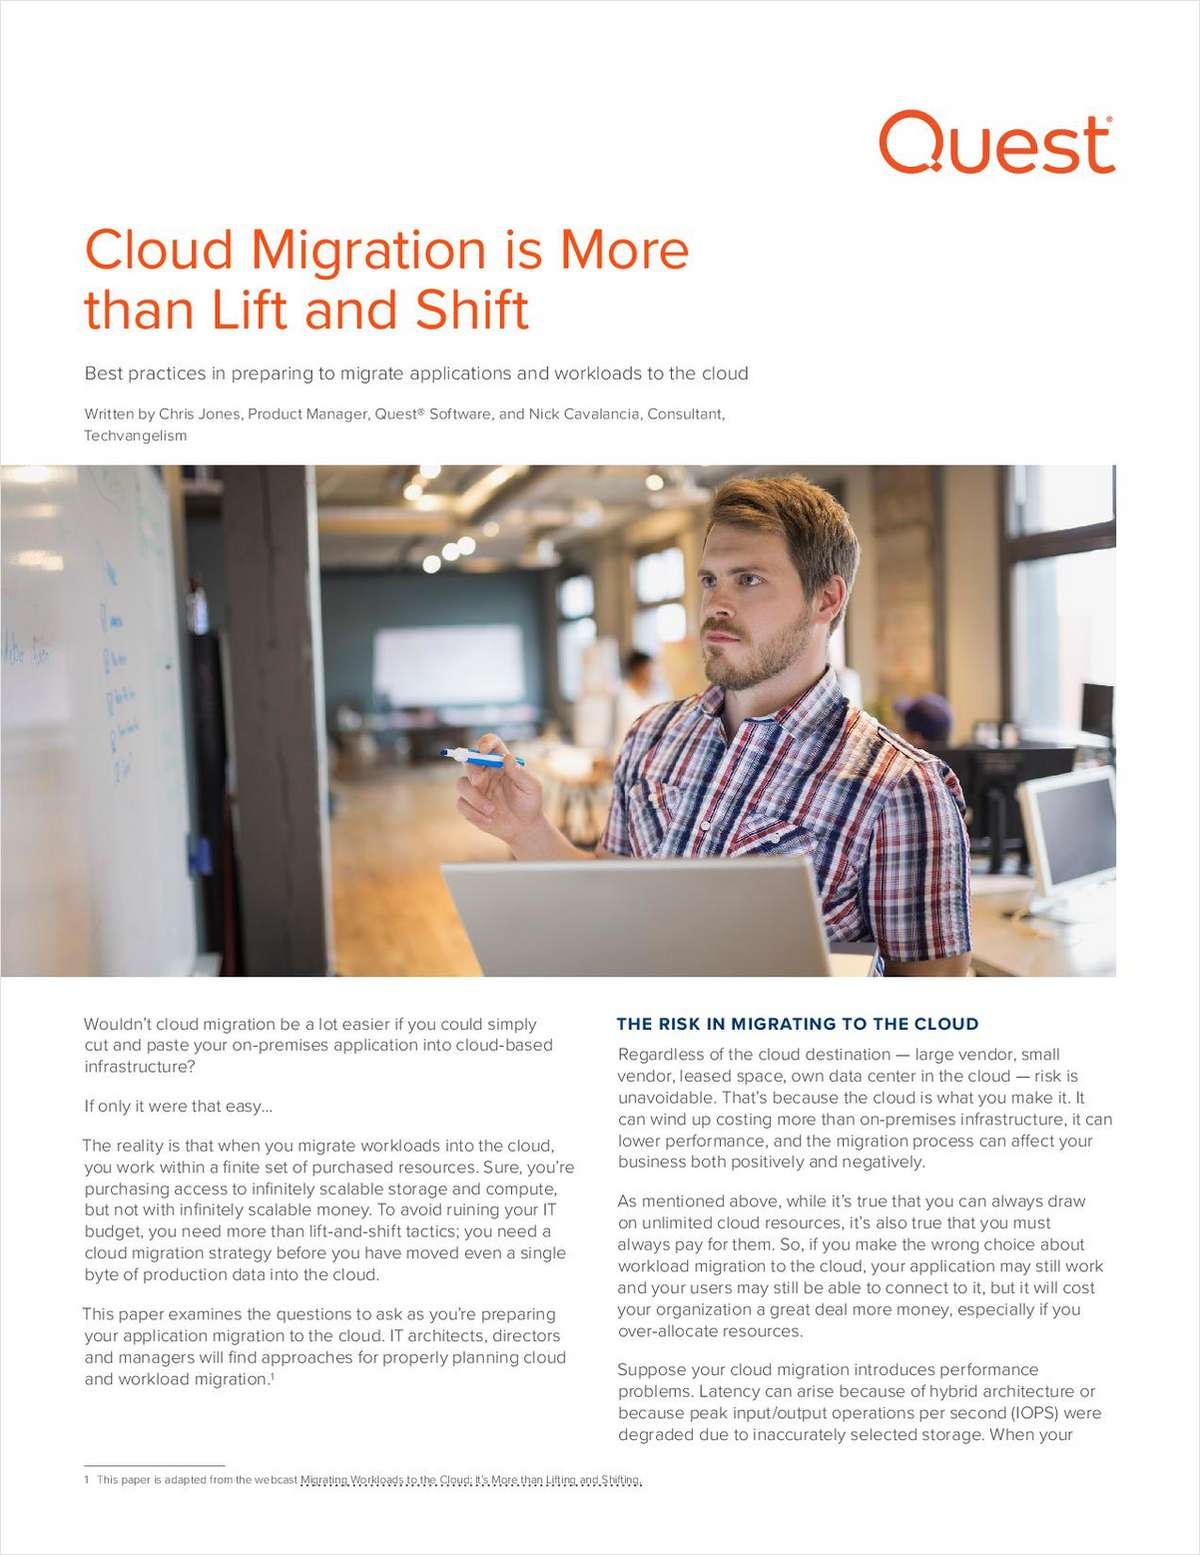 Cloud Migration is More than Lift and Shift